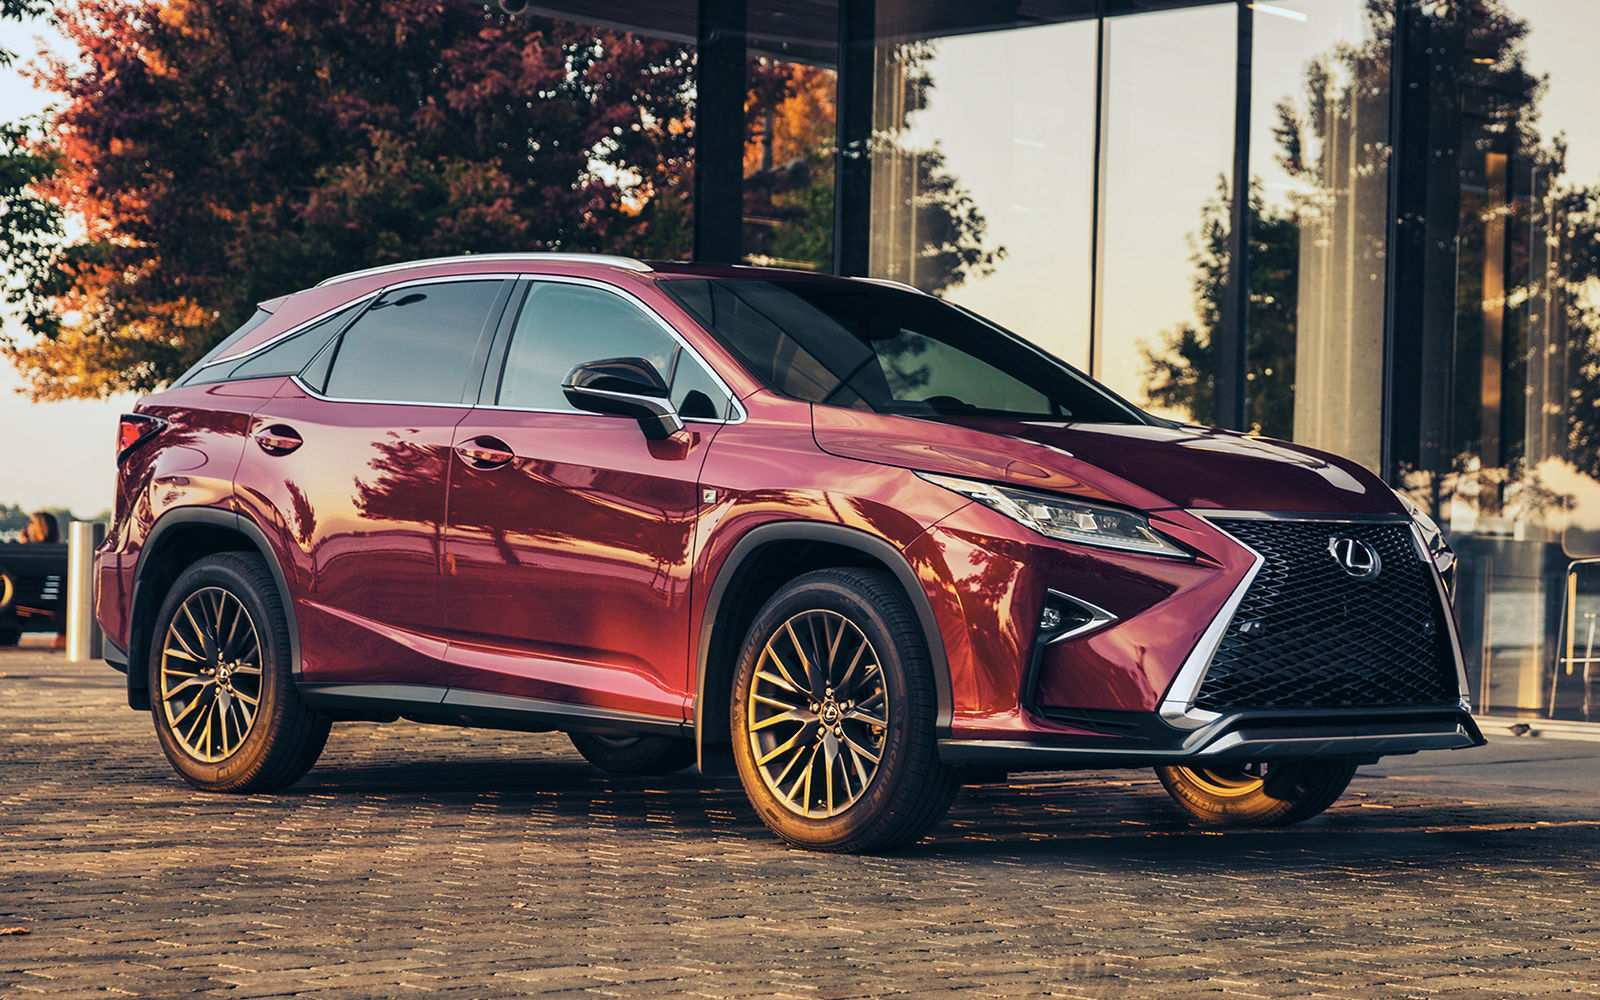 62 The Best 2019 Lexus Vehicles Wallpaper